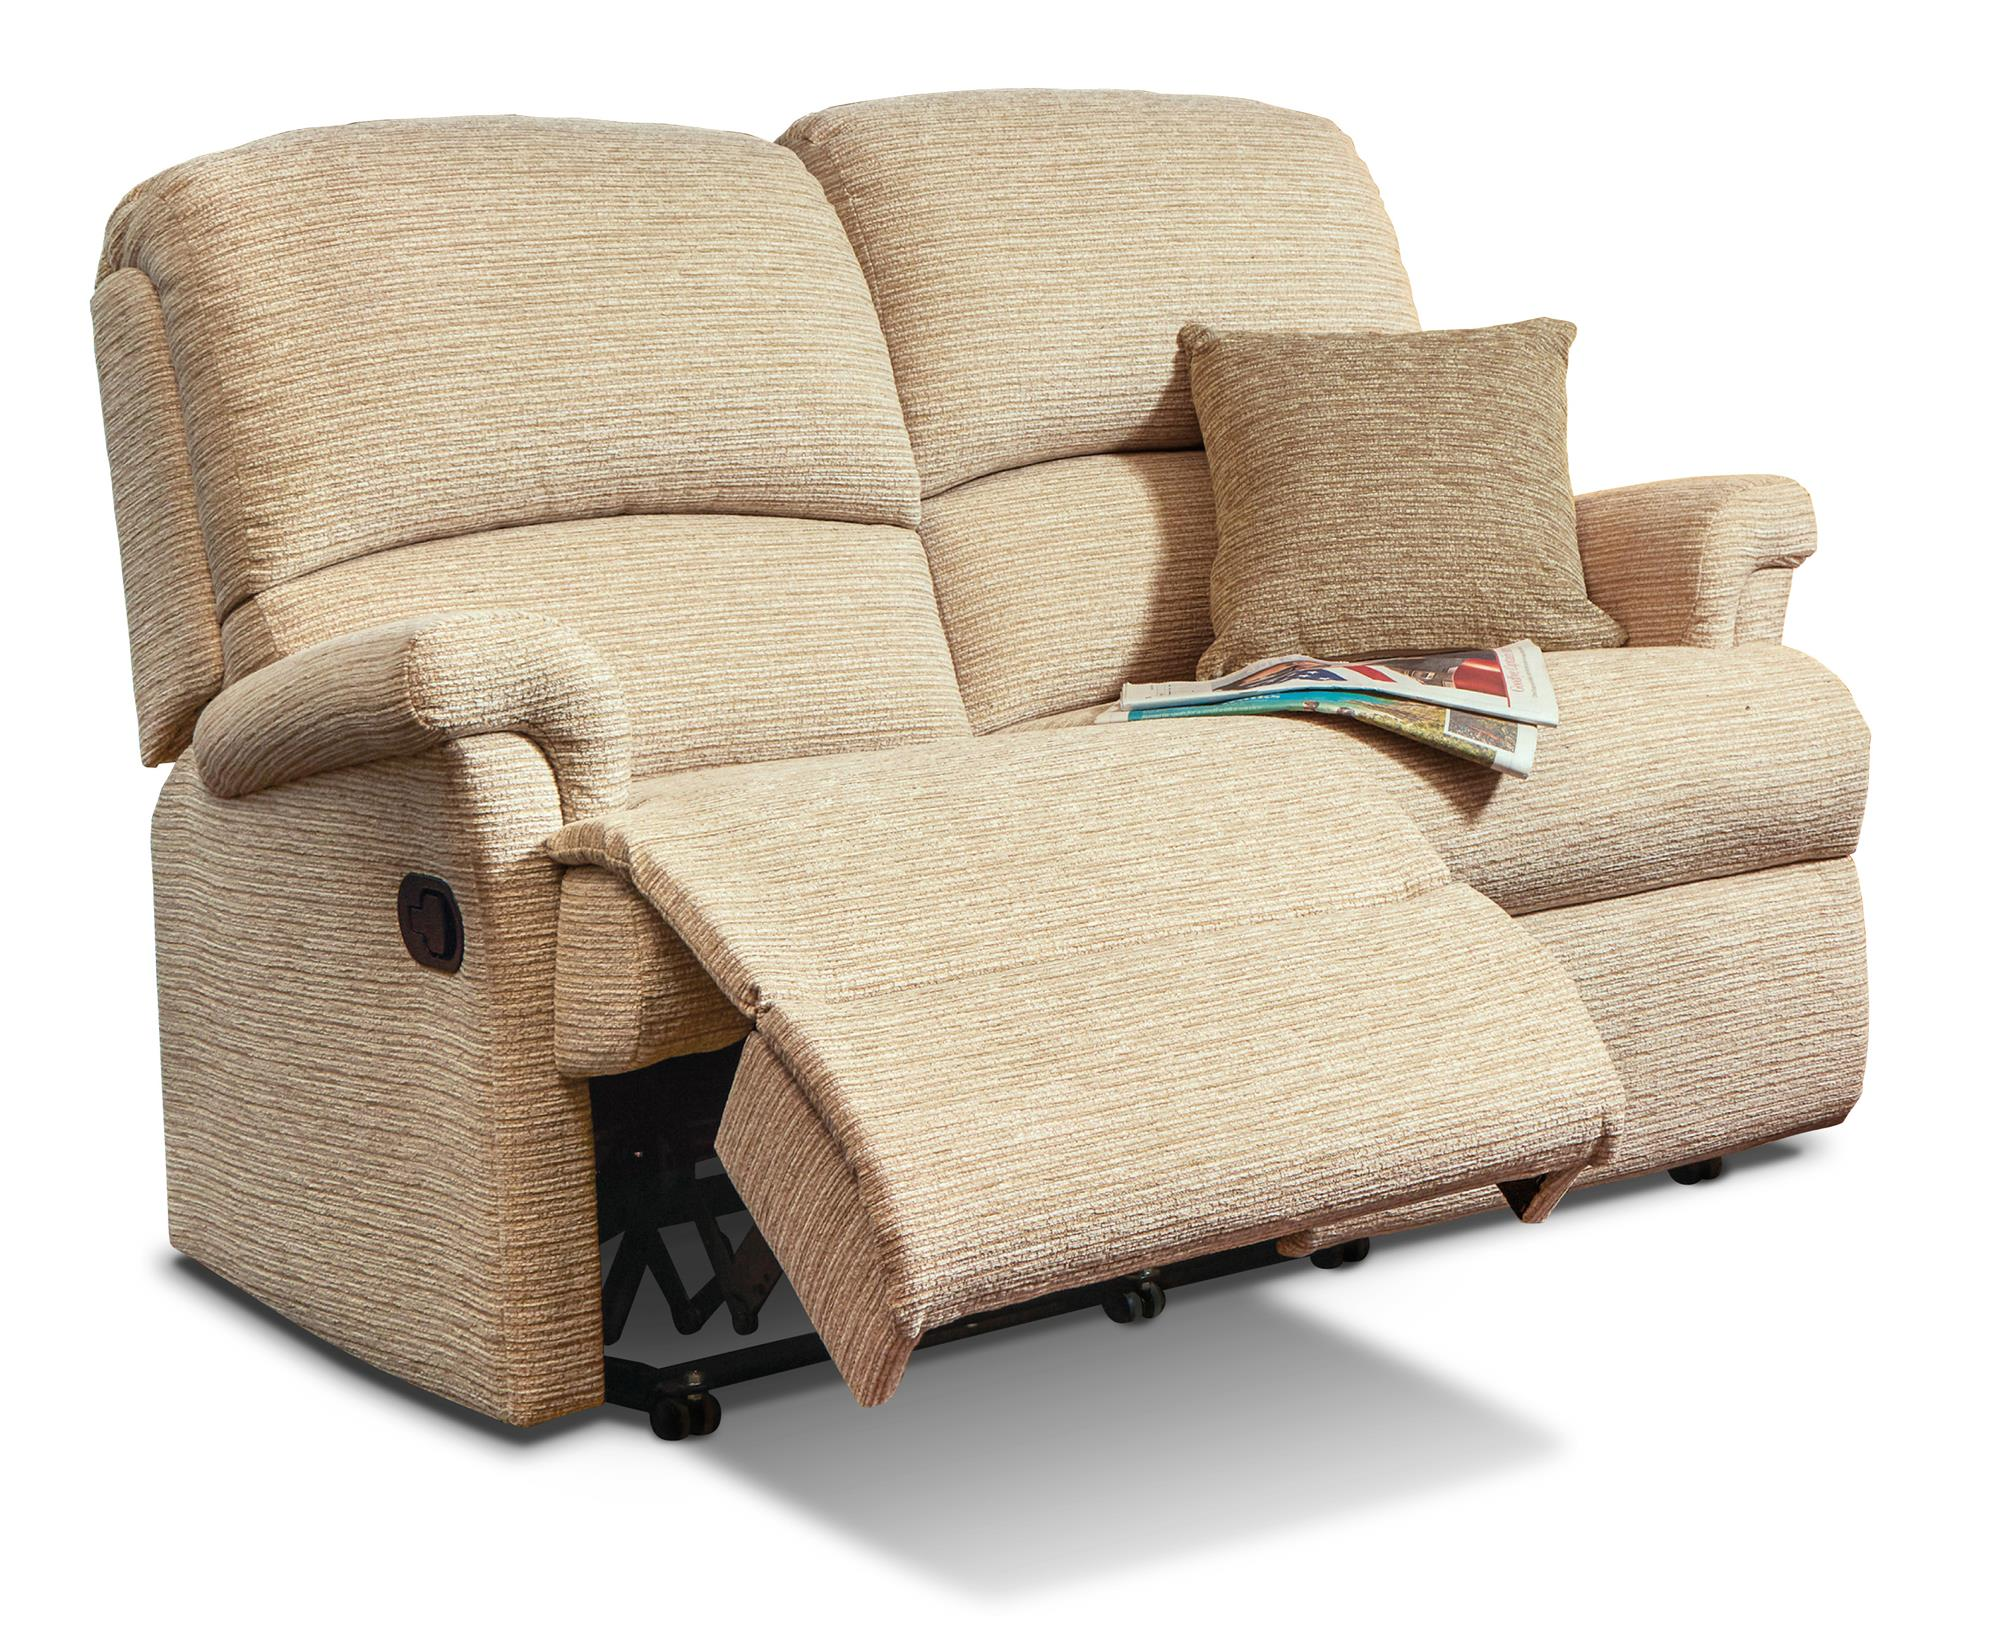 Nevada 2 Str Reclining Settee - by Sherborne